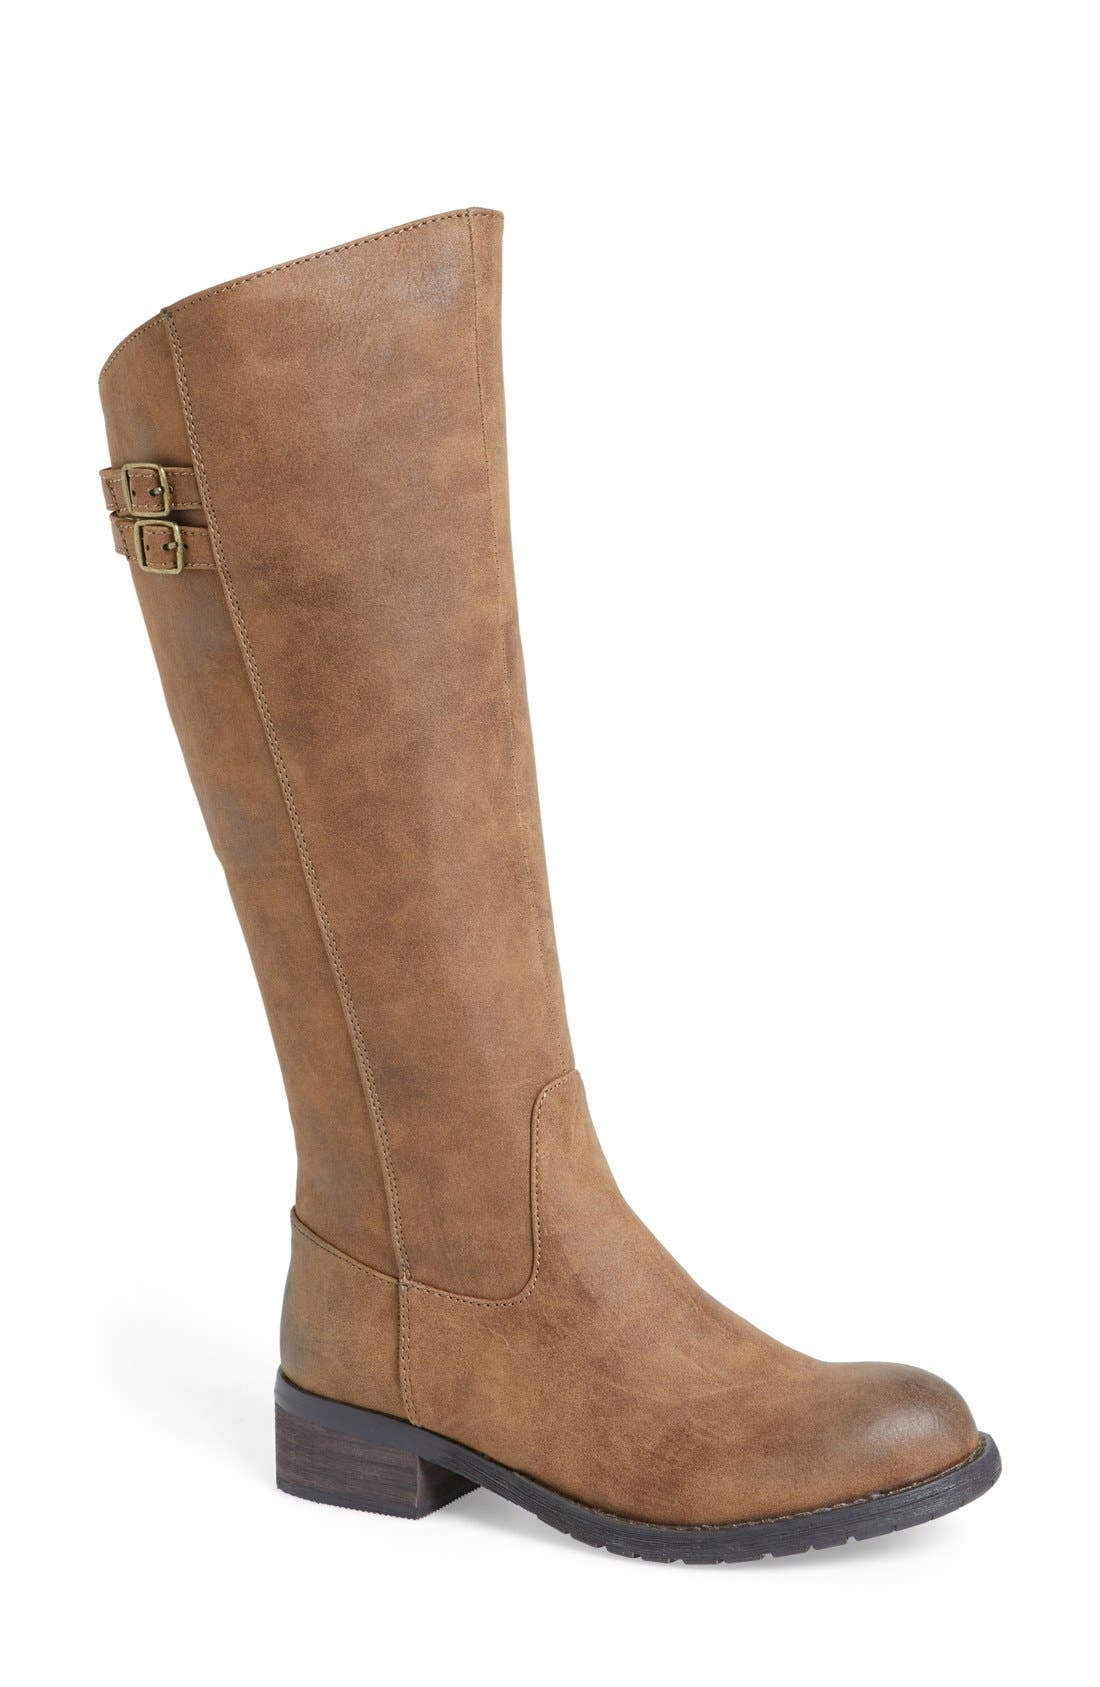 Alternate Image 1 Selected - Very Volatile 'Mira' Riding Boot (Women)